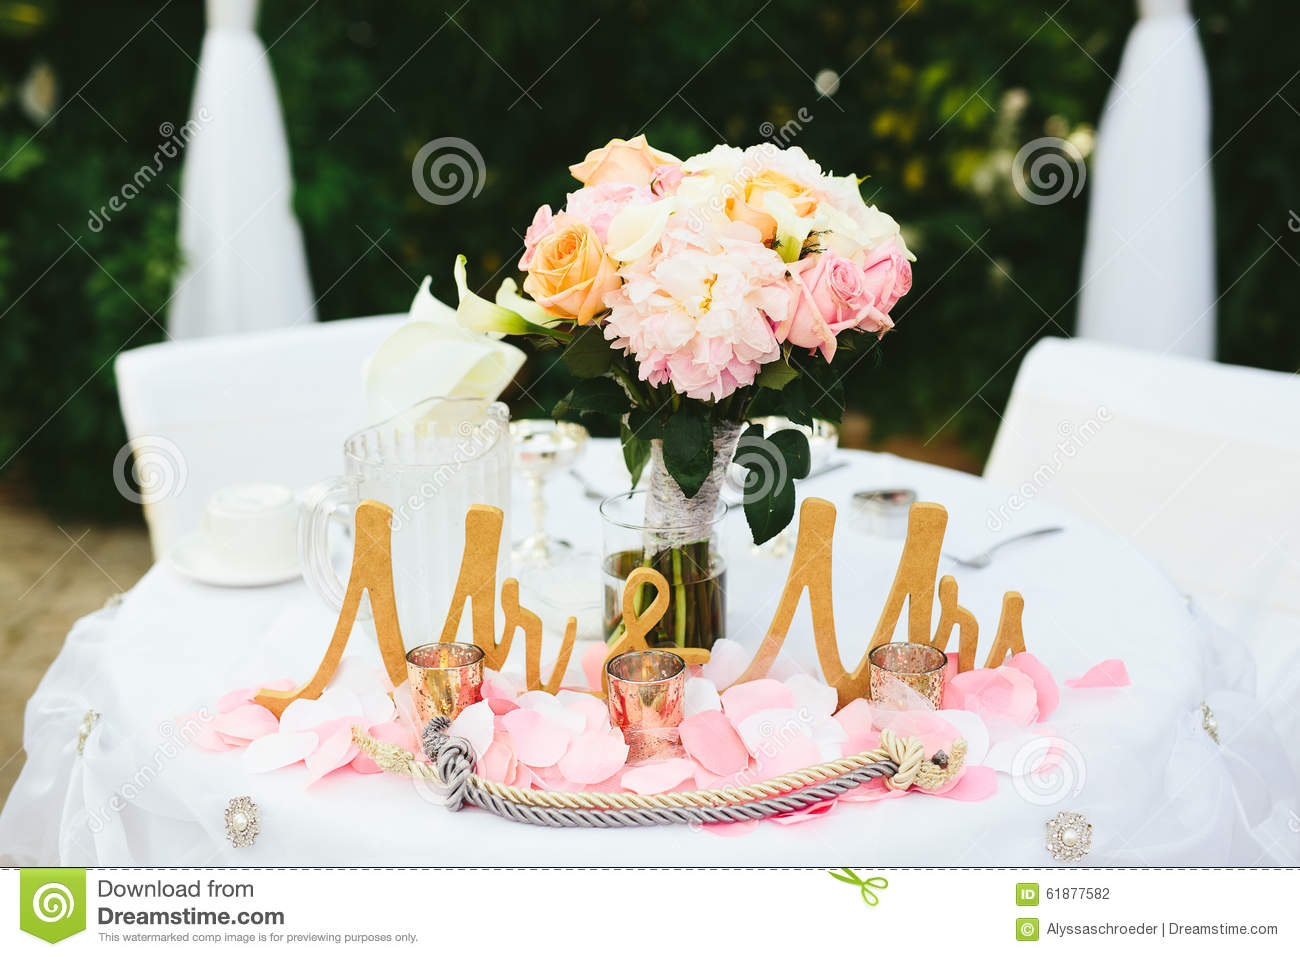 Merveilleux Wedding Bride Groom Table